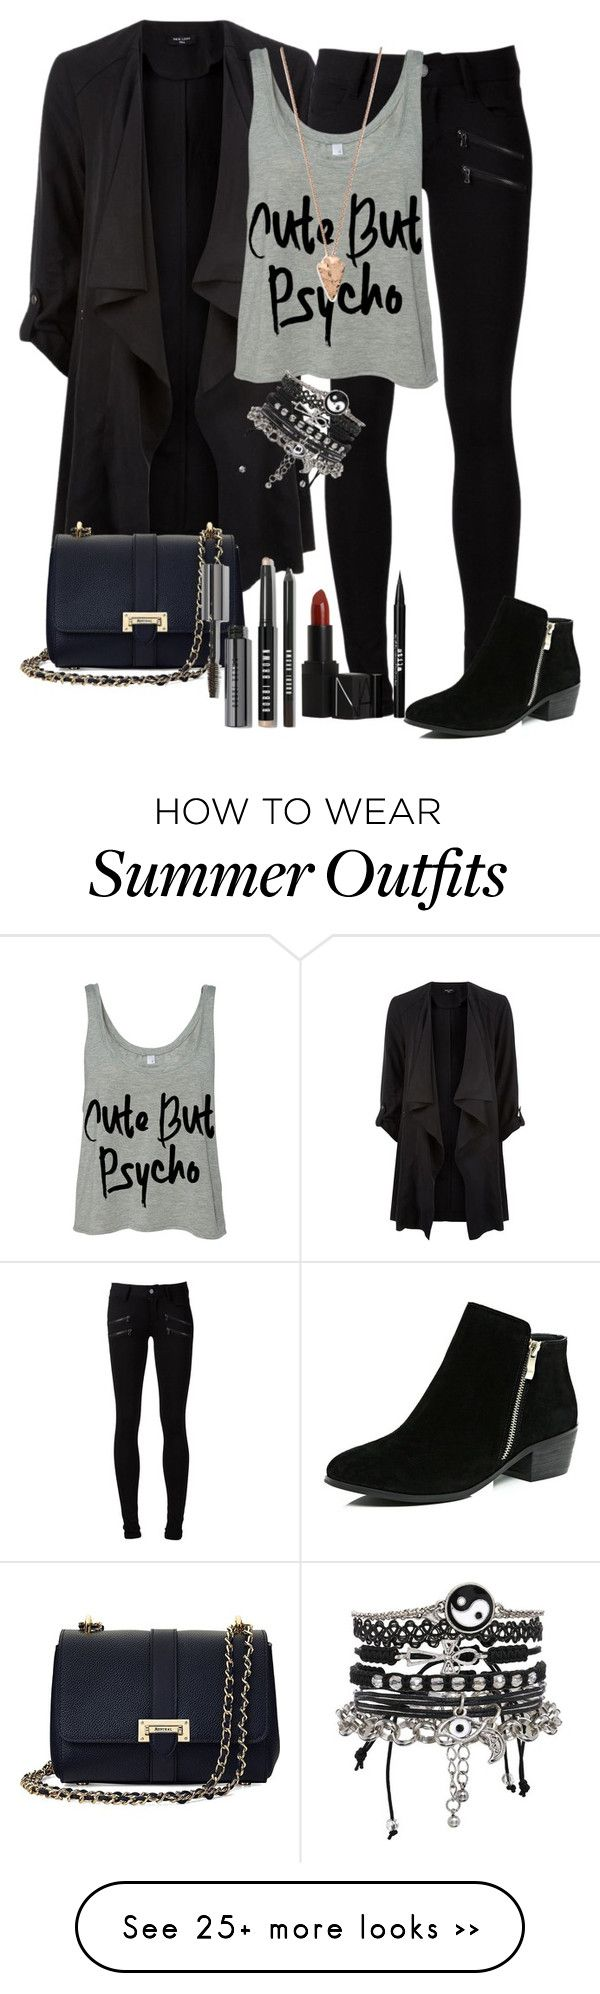 """""""Untitled #37"""" by sophie-harris15 on Polyvore featuring Paige Denim, Aspinal of London, ASOS, River Island, NARS Cosmetics, Pamela Love, Bobbi Brown Cosmetics and Stila"""